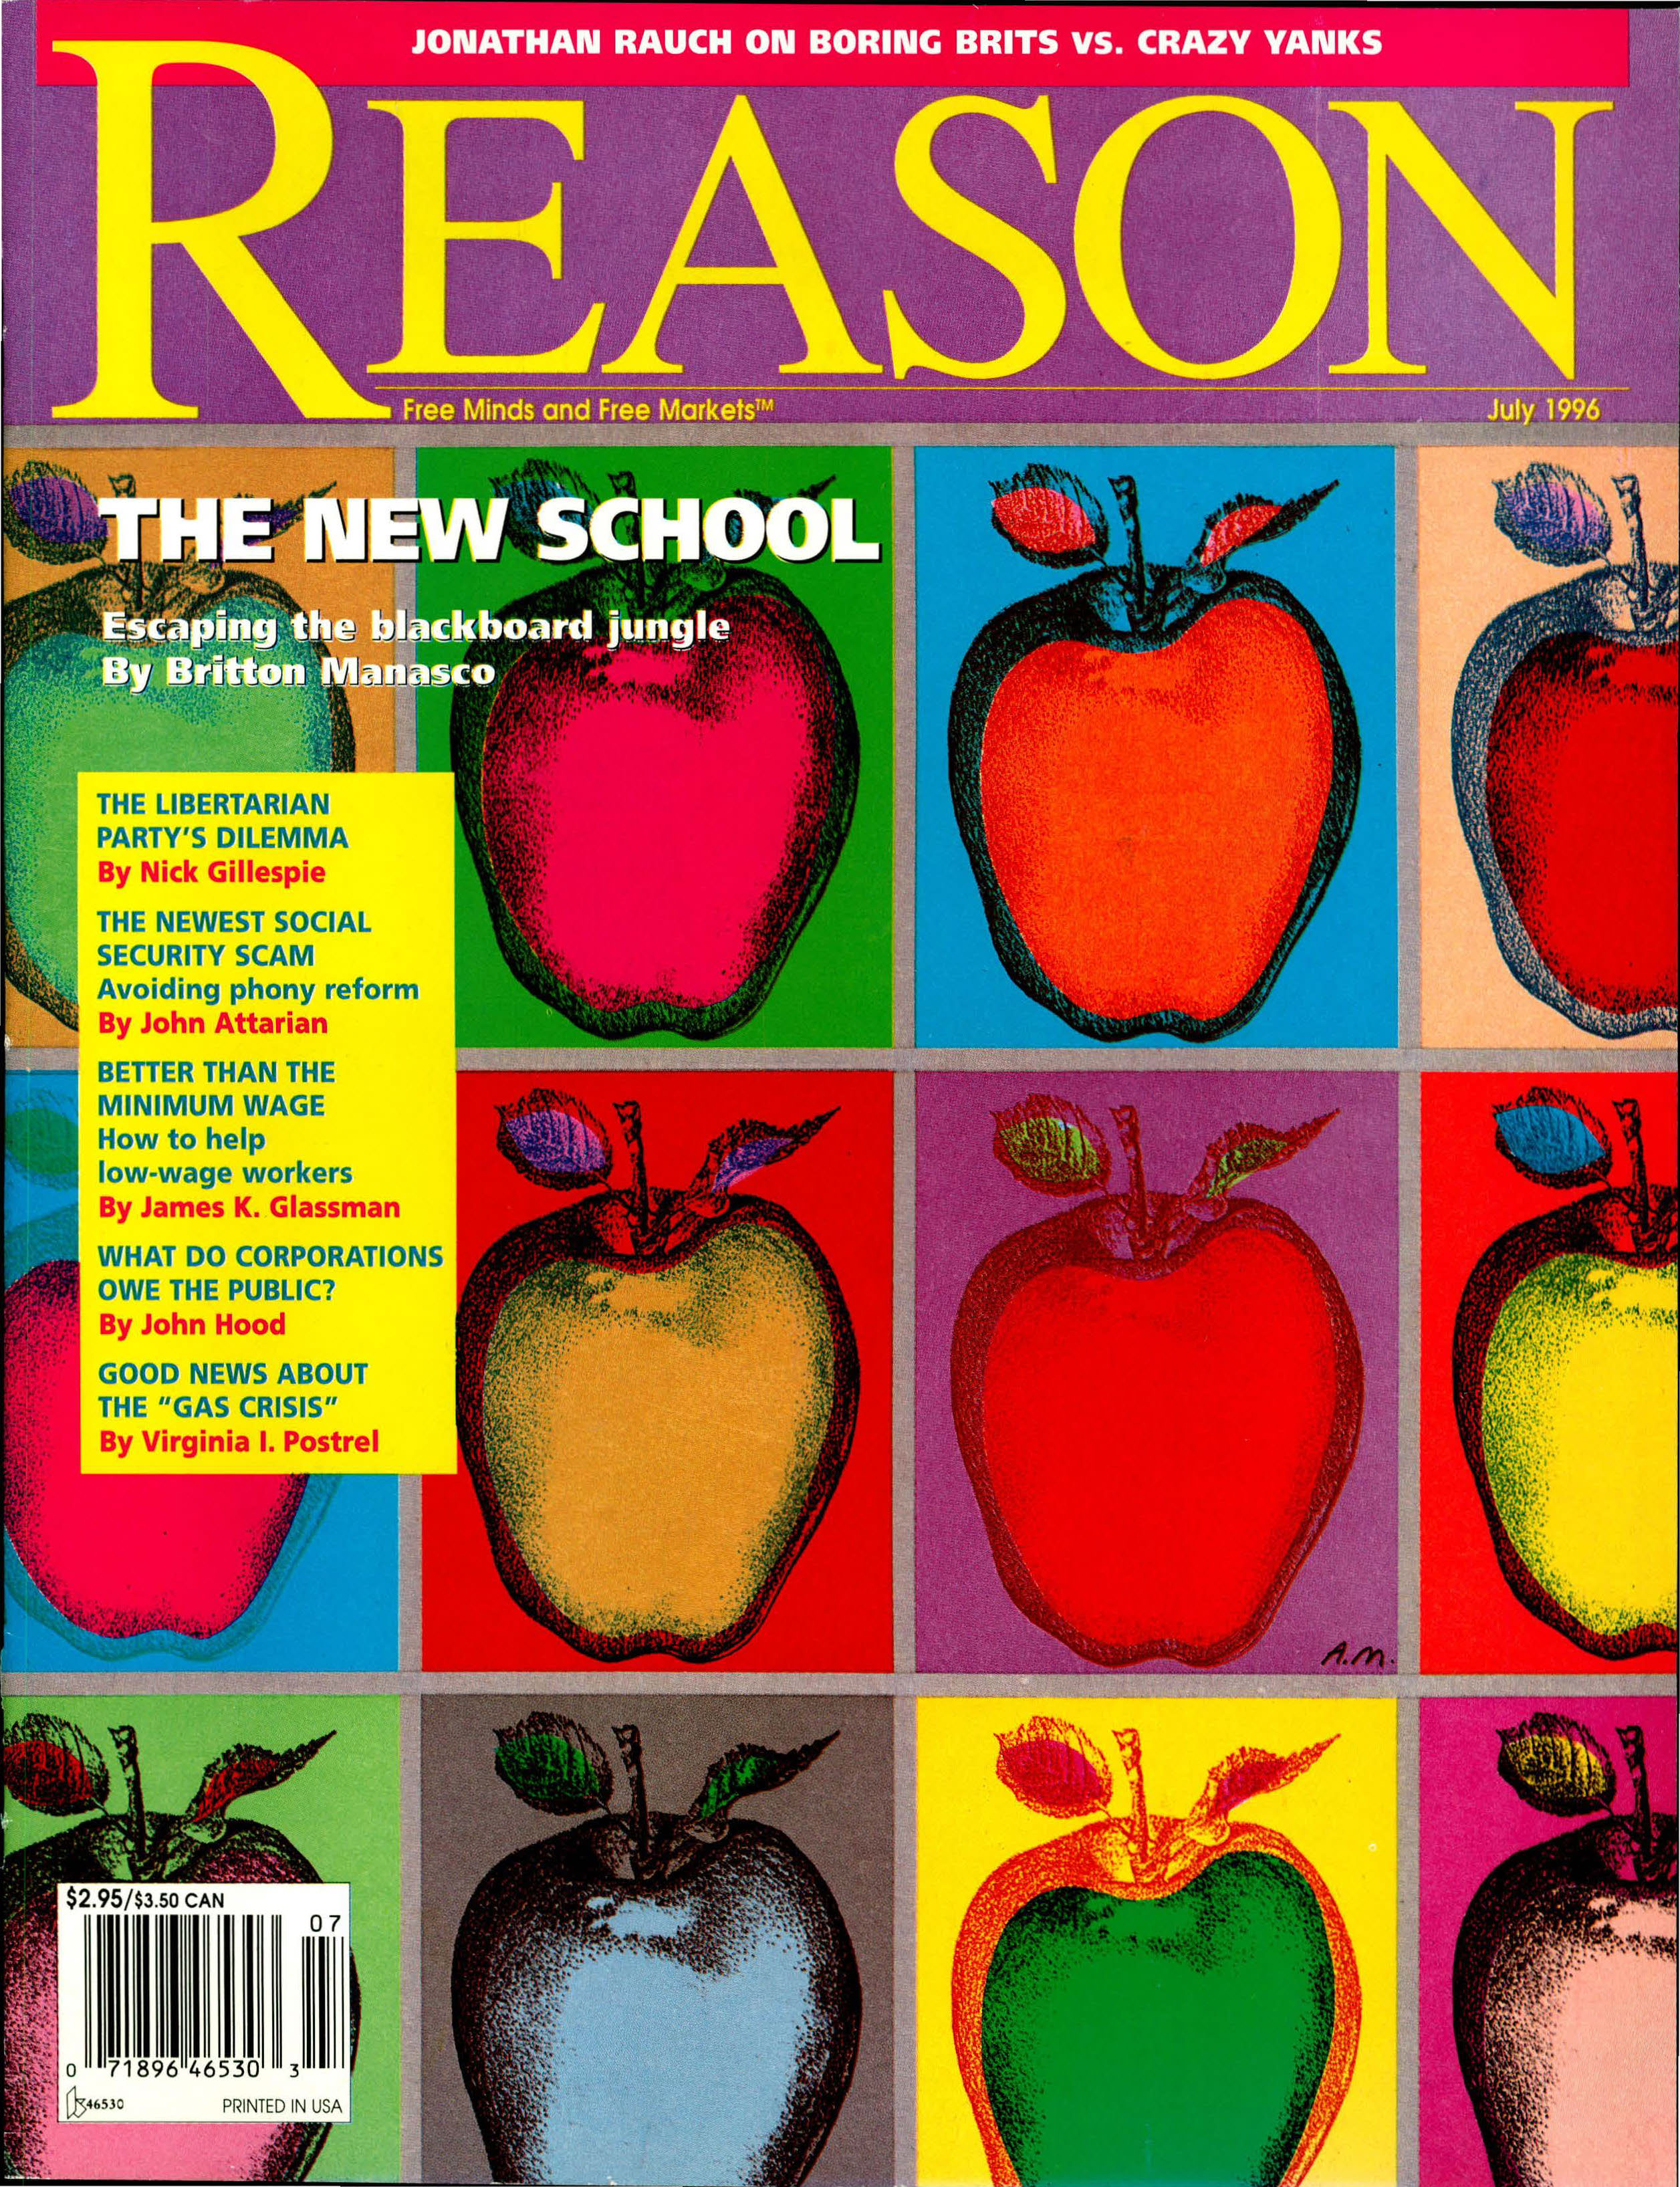 Reason Magazine, July 1996 cover image